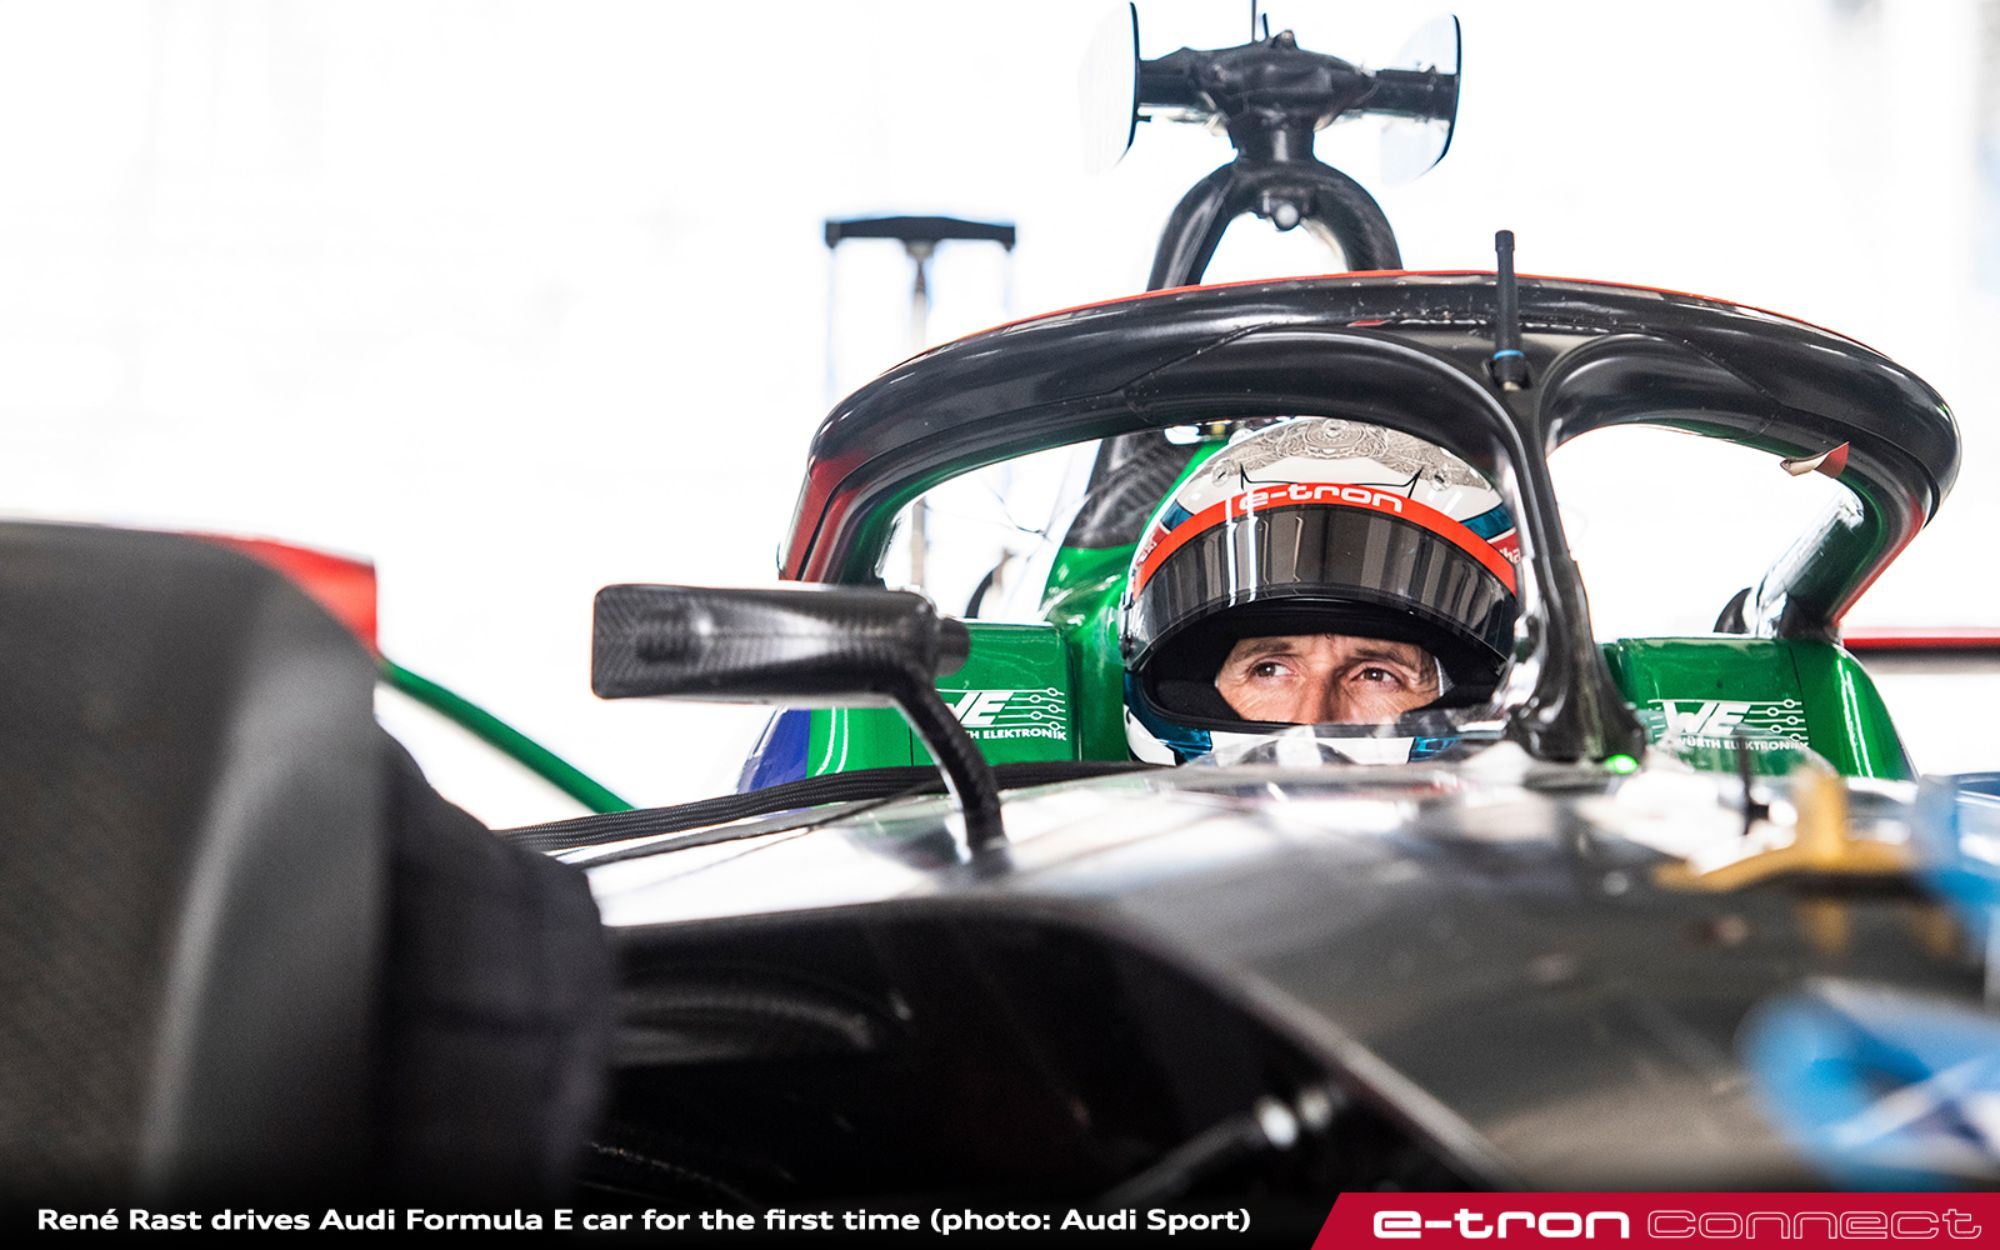 René Rast Drives Audi Formula E Car For The First Time